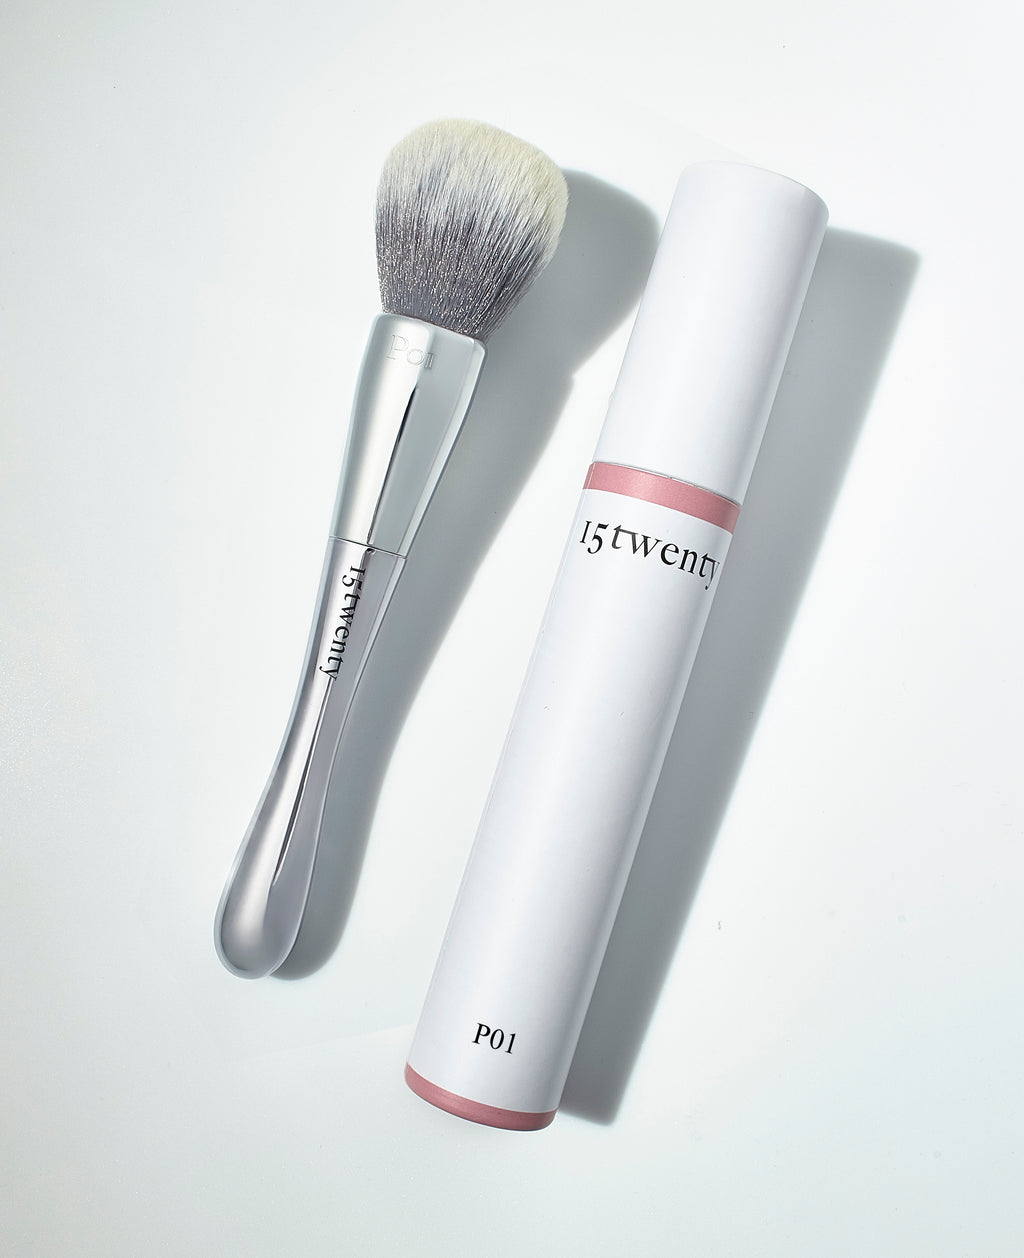 Powder Brush (P01)